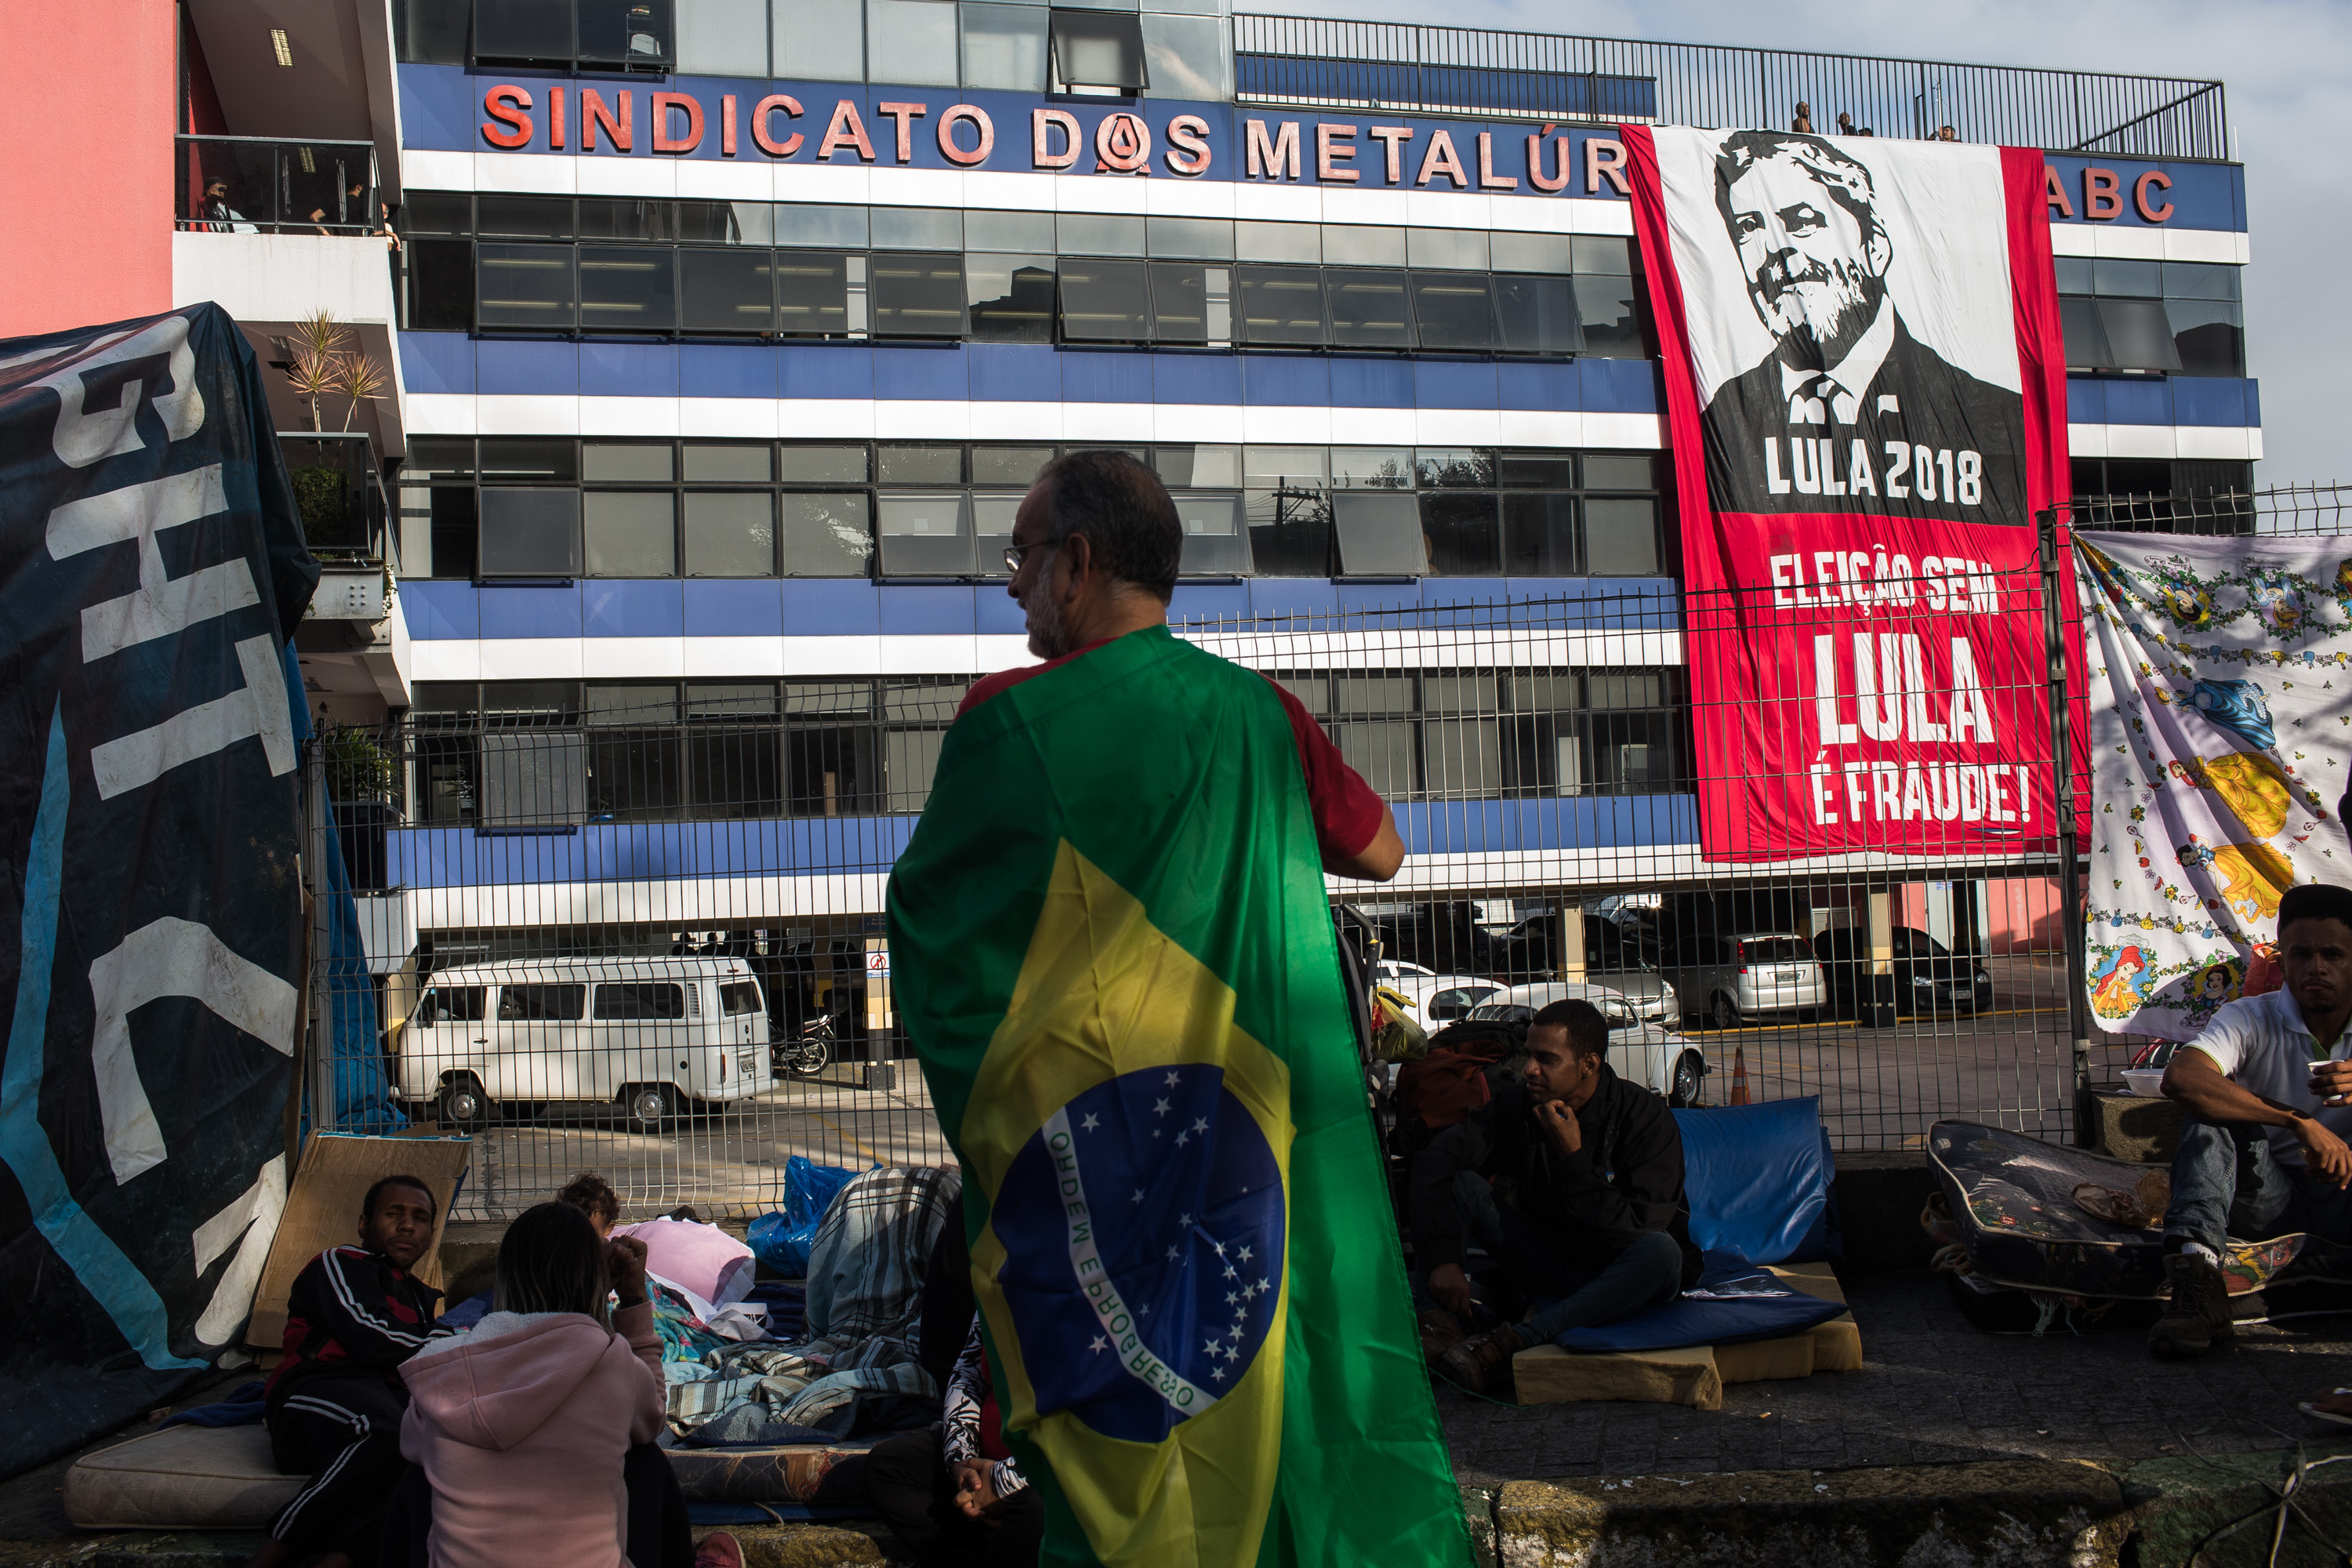 """Noam Chomsky on Lula: He Is """"Kept in Isolation So That the 'Soft Coup' in Brazil Can Proceed"""""""